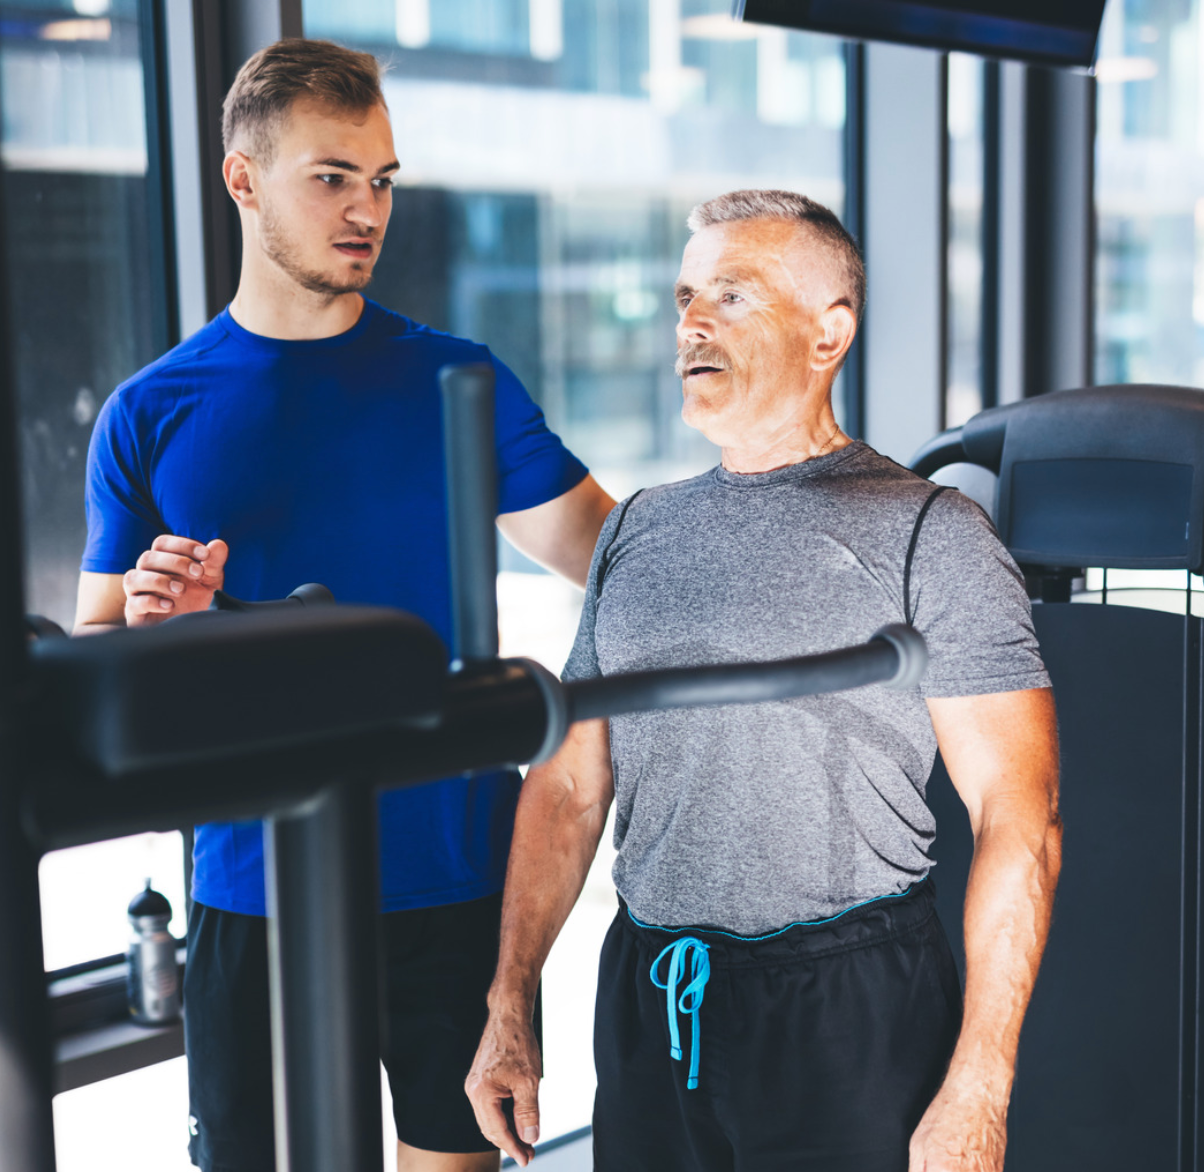 Personal training one on one coaching